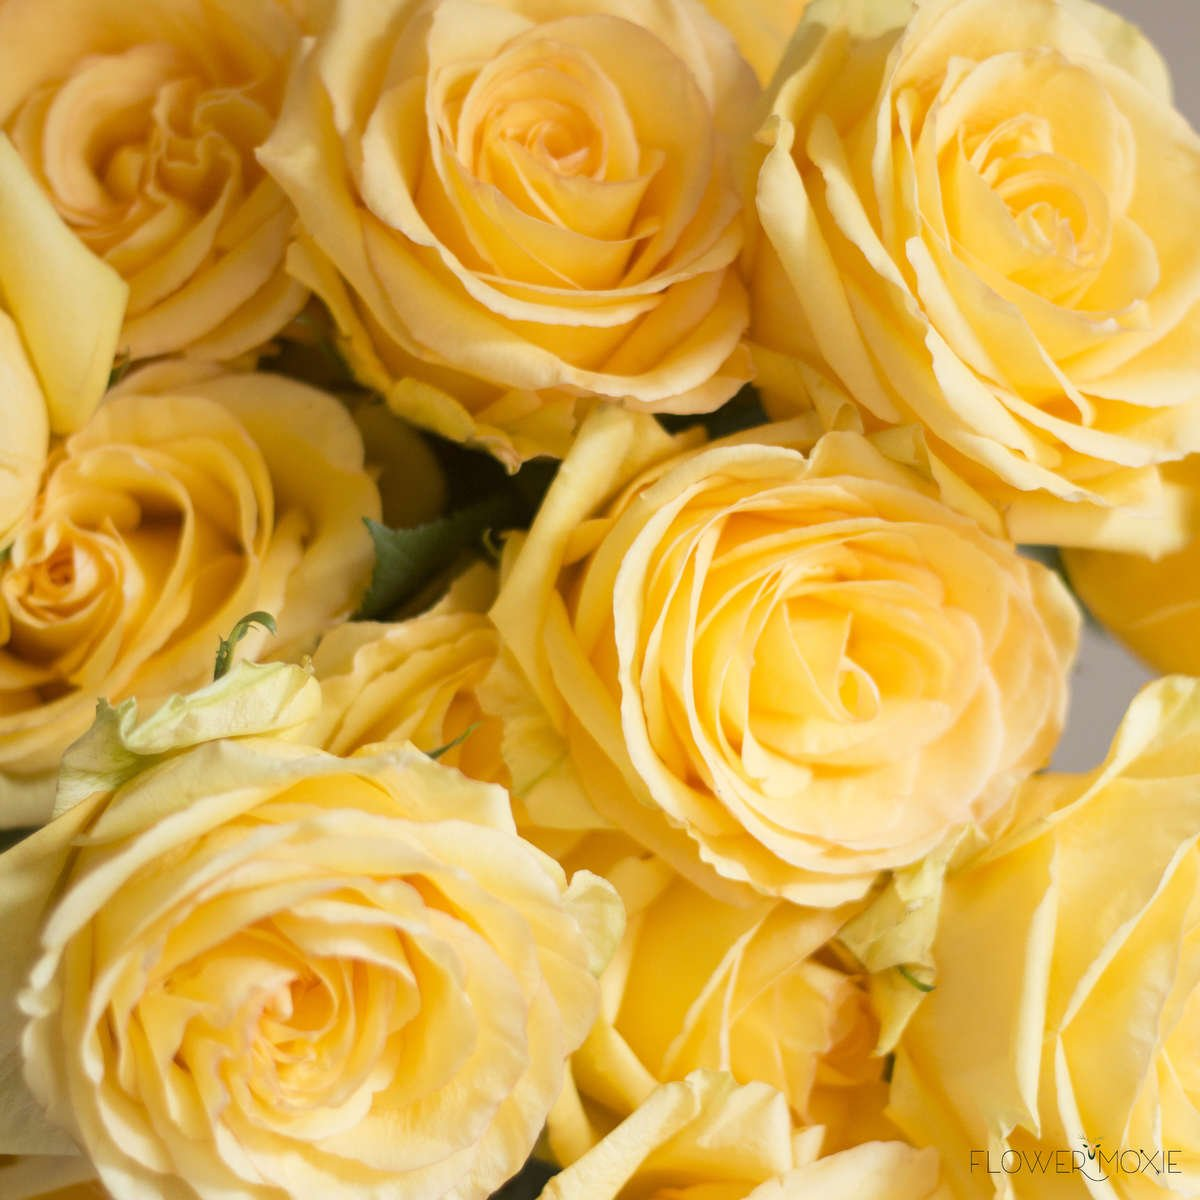 deja vu rose, yellow rose, bright rose, happy rose, flower moxie, DIY bride, DIY flower ideas, DIY wedding ideas, DIY bouquet ideas, DIY bridesmaid , DIY bridal bouquet ideas